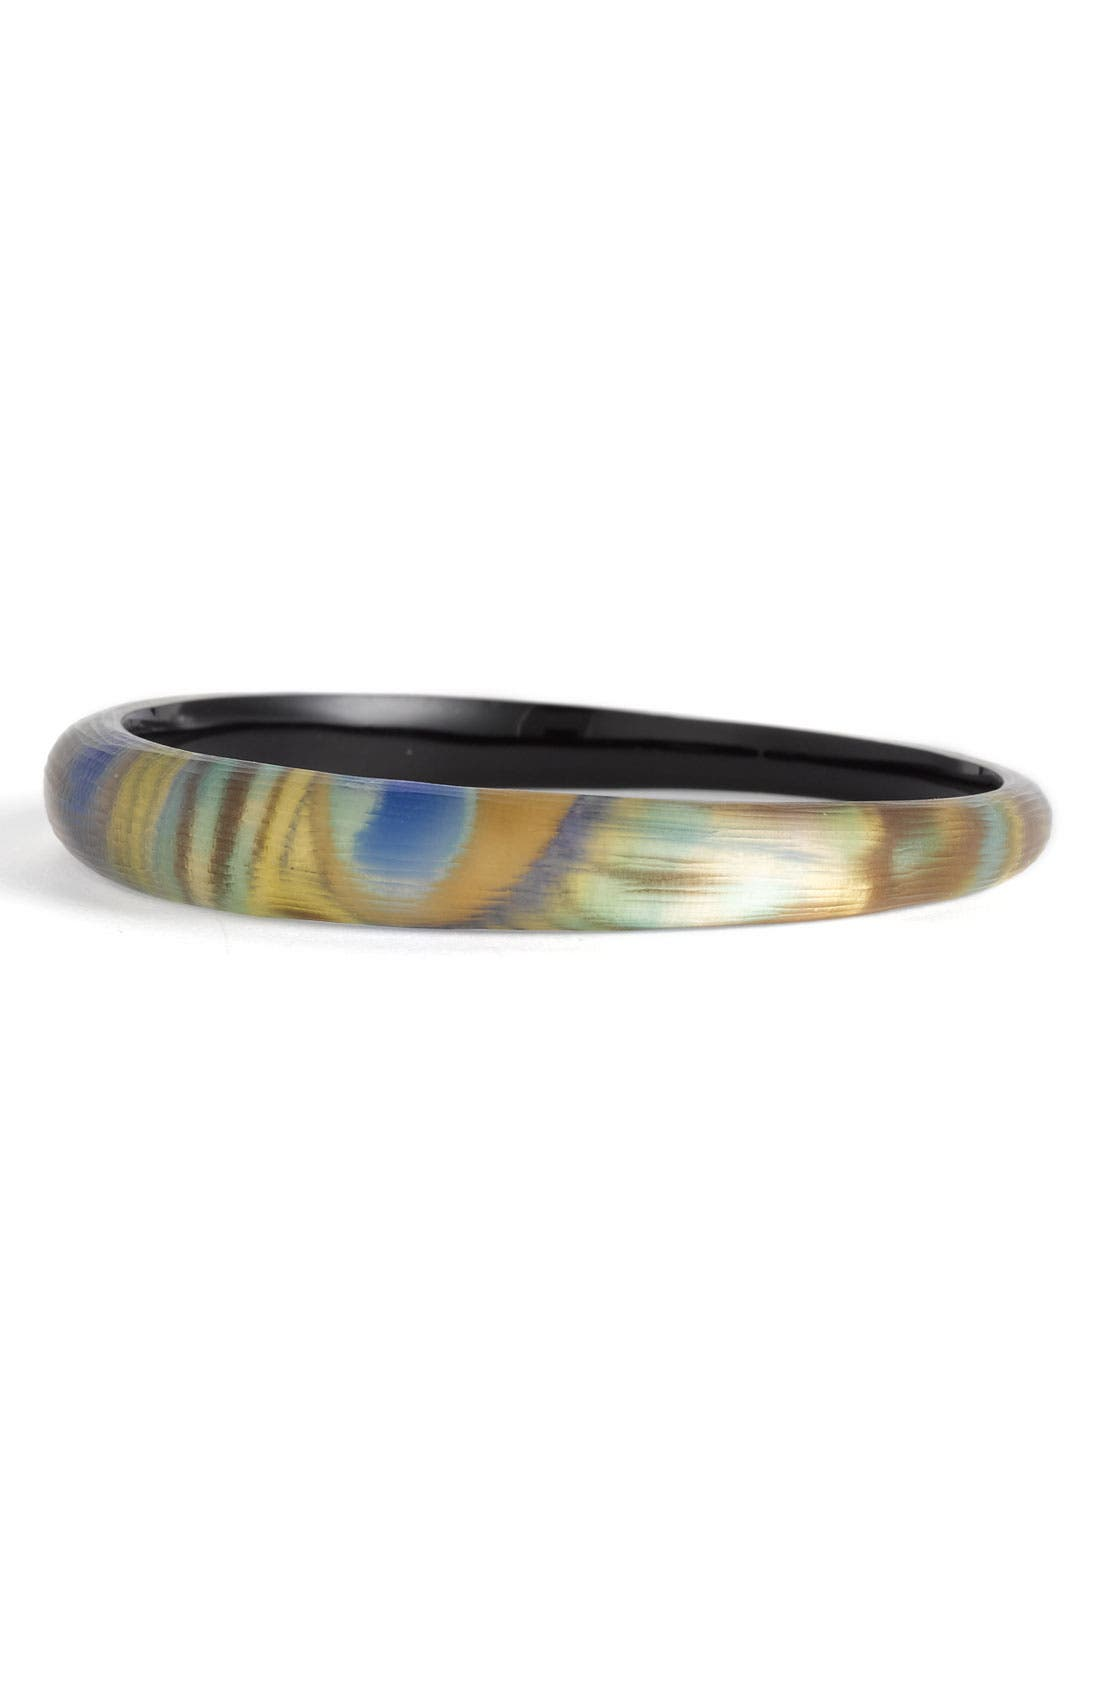 Alternate Image 1 Selected - Alexis Bittar 'Alexandria' Skinny Tapered Bangle (Nordstrom Exclusive)